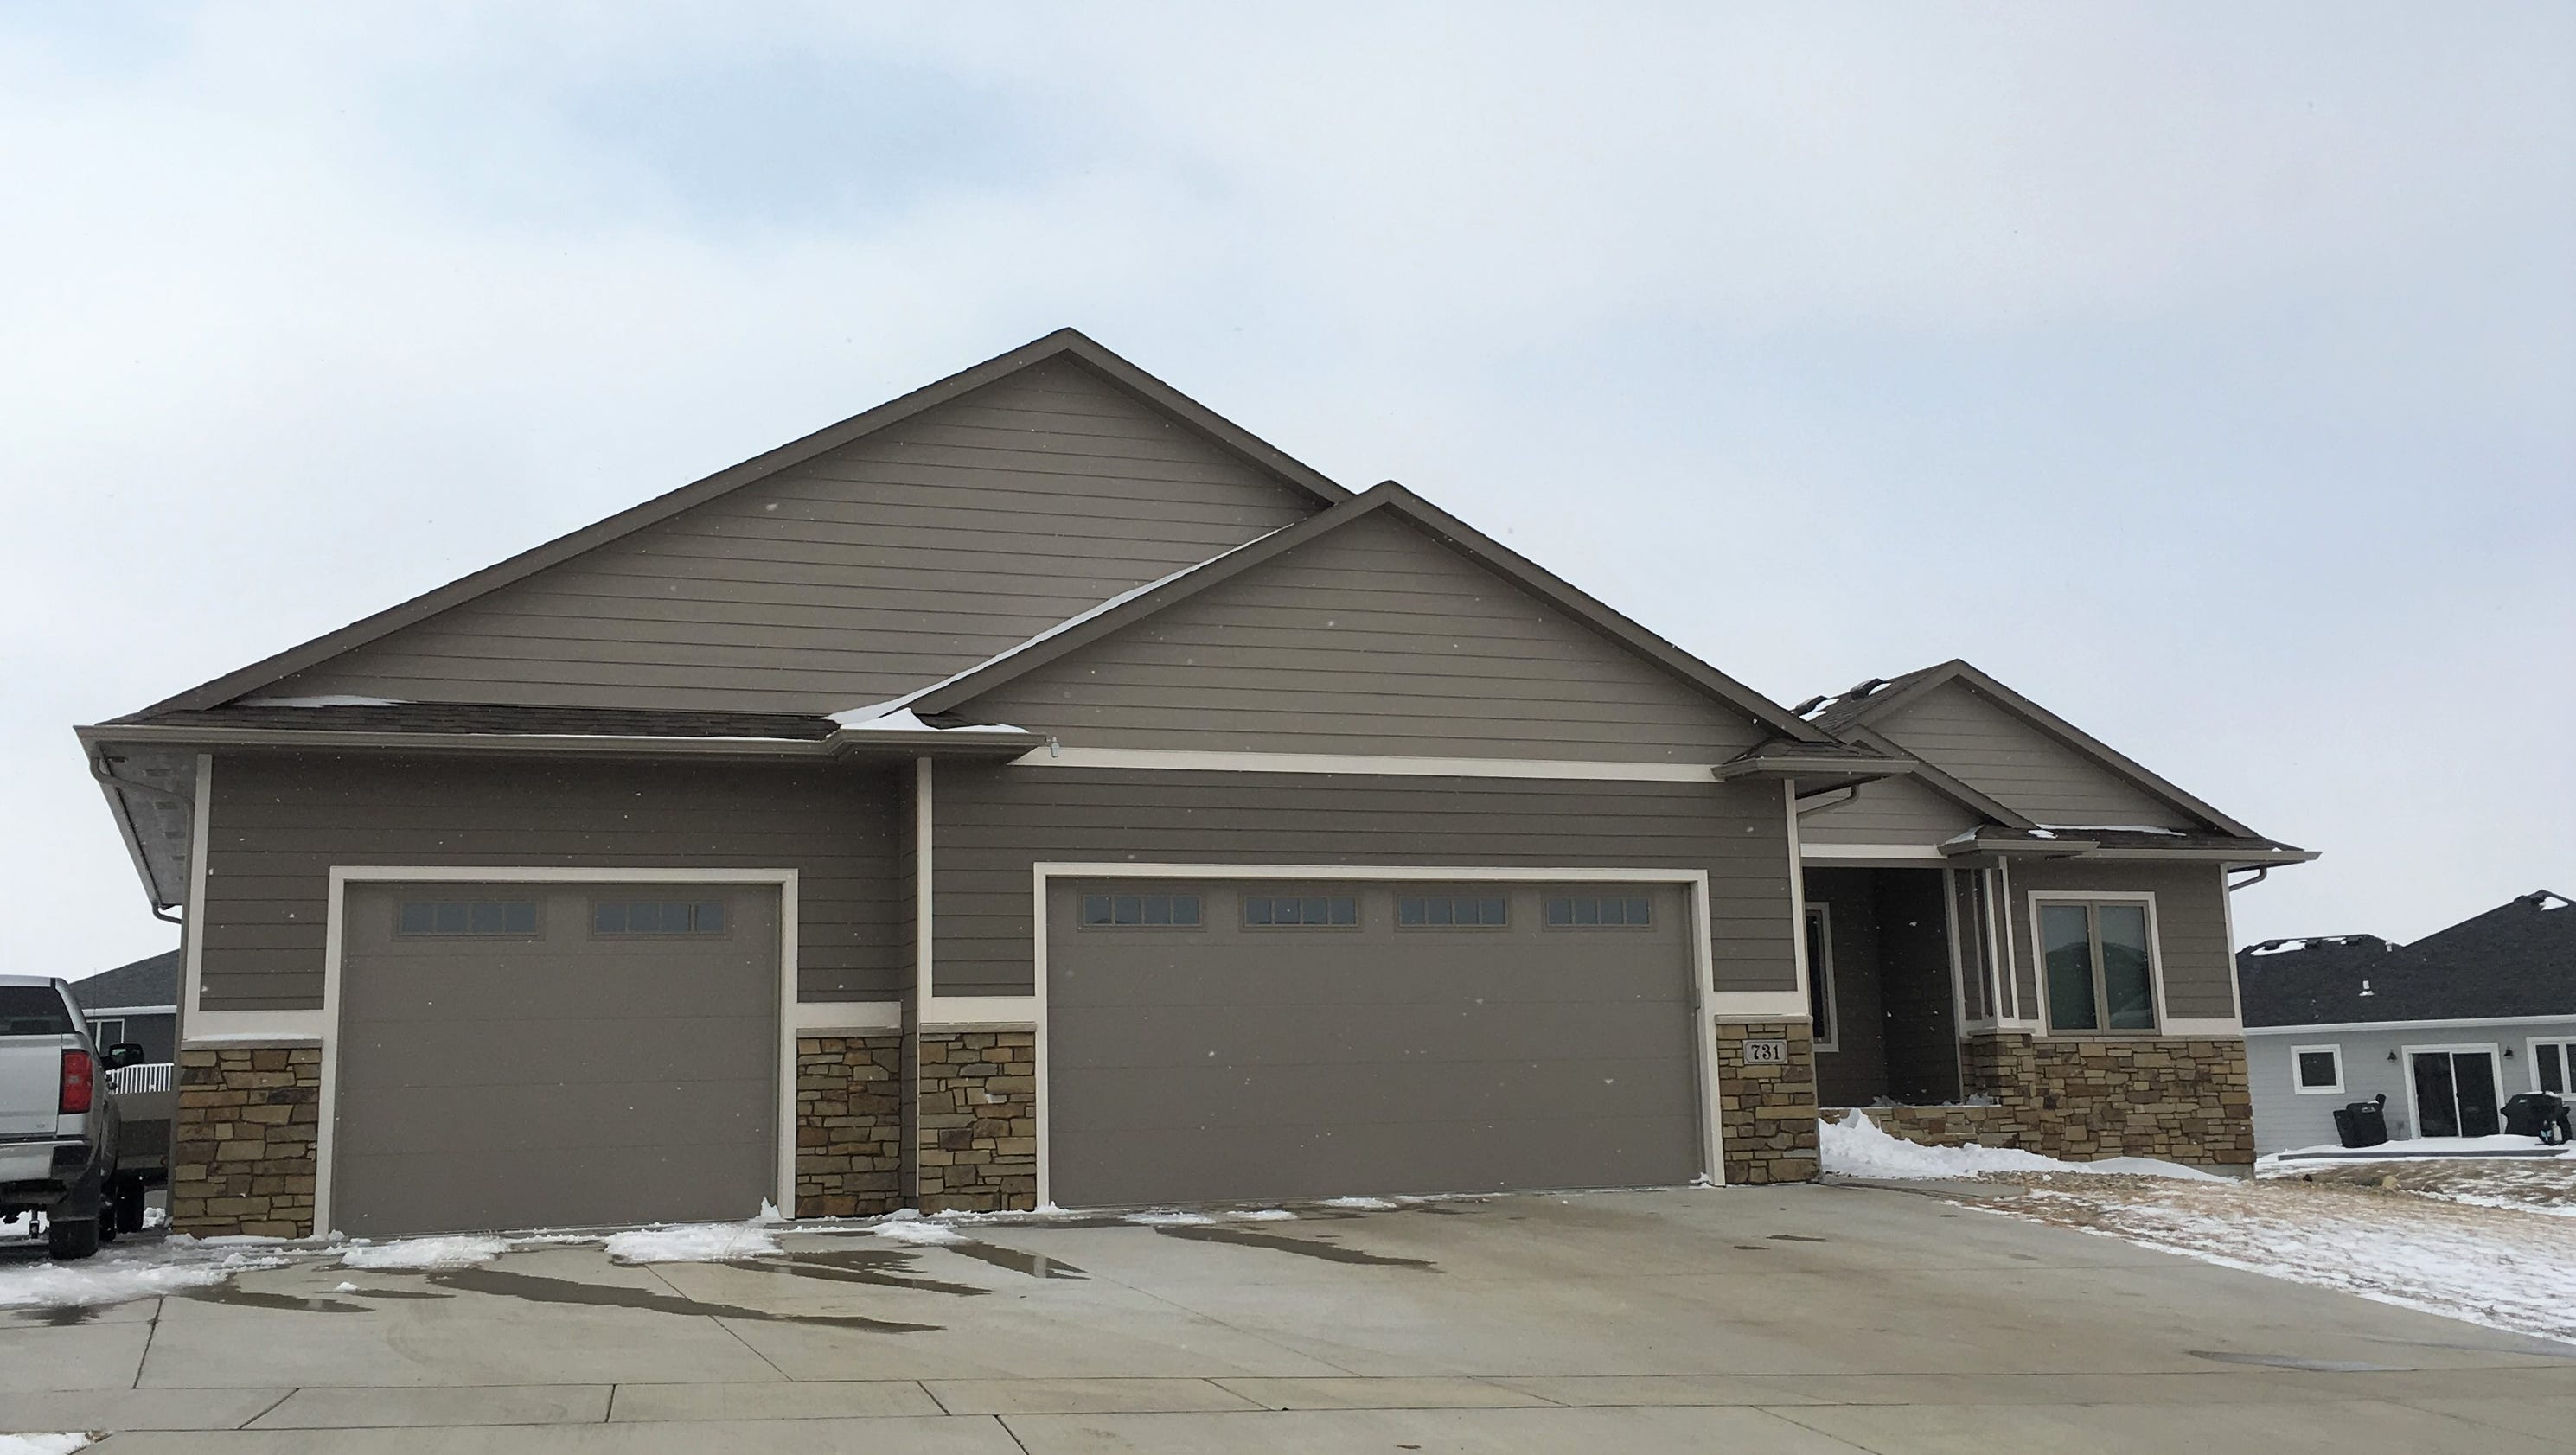 garage for sioux sale st david sd network doors shipton falls the hoffman homes dhg w details group